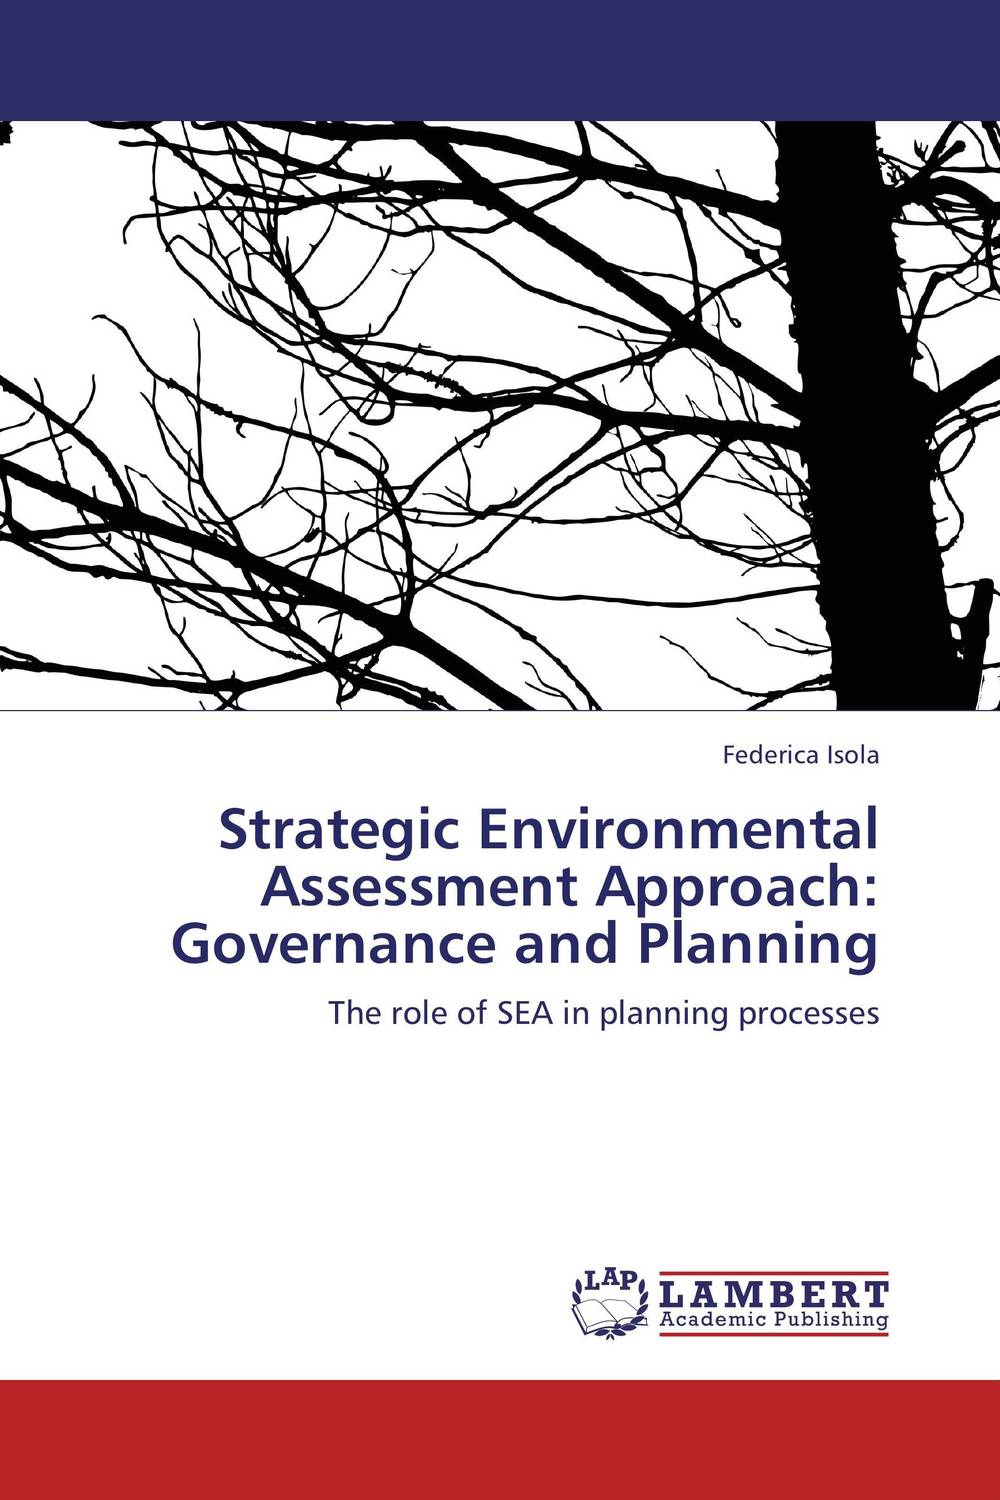 купить Strategic Environmental Assessment Approach: Governance and Planning недорого